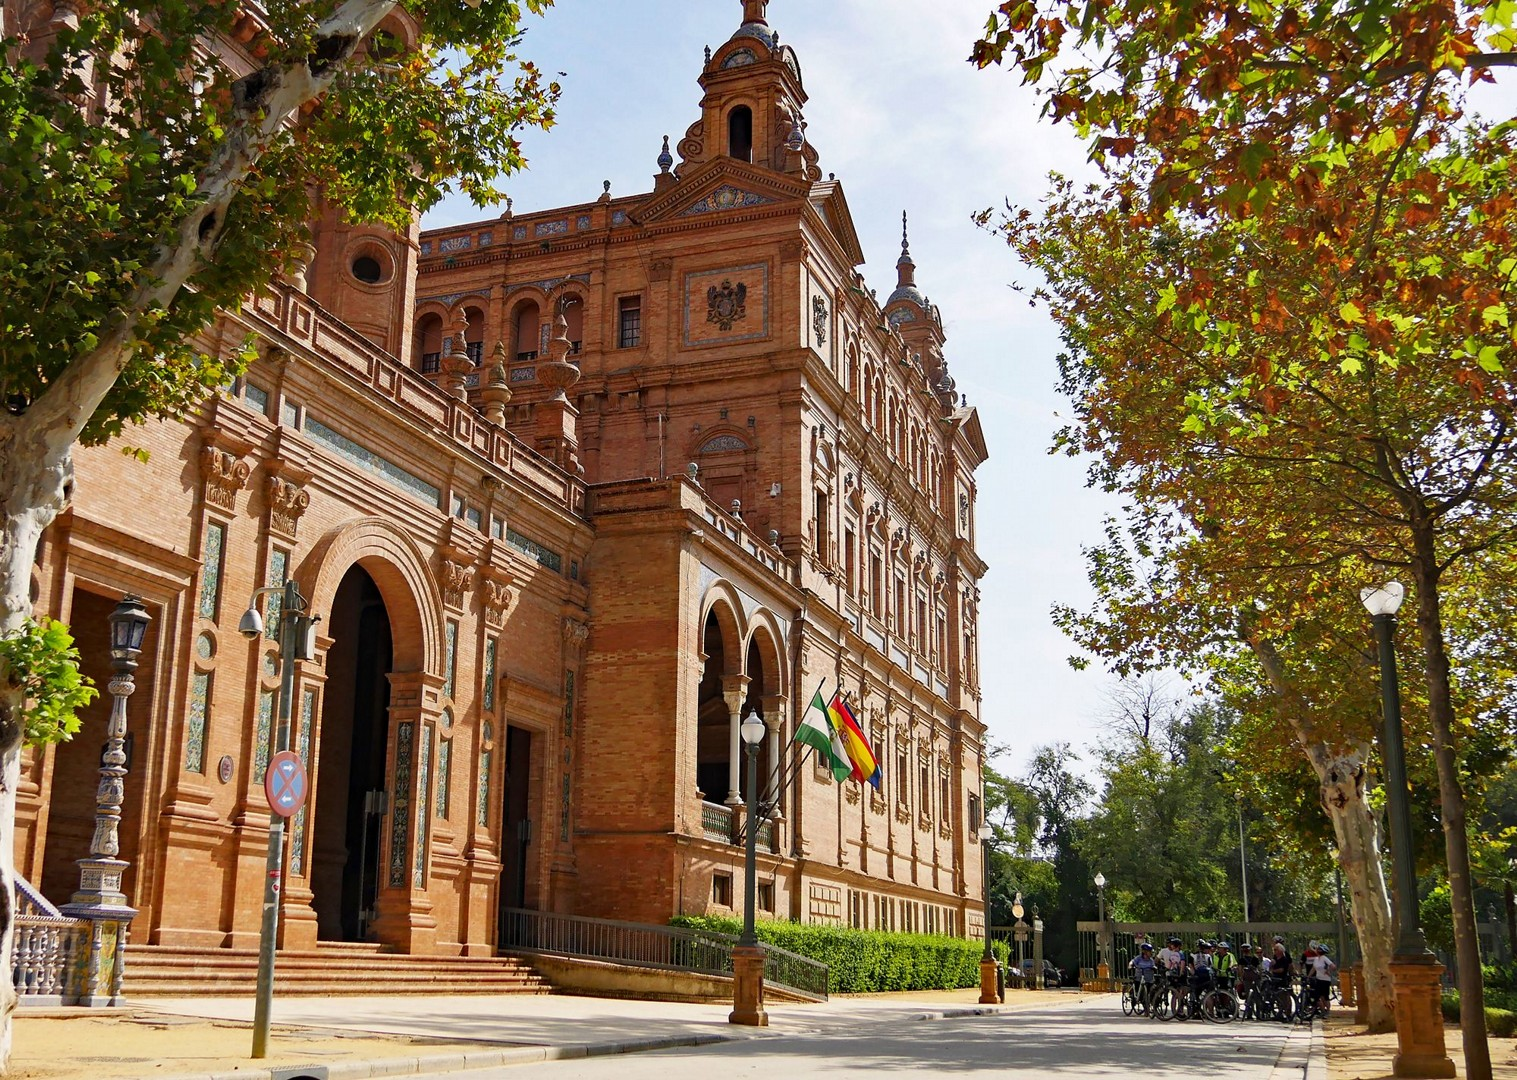 southern-spain-granada-to-seville-guided-leisure-cycling-holiday.jpg - Spain - Granada to Seville - Leisure Cycling